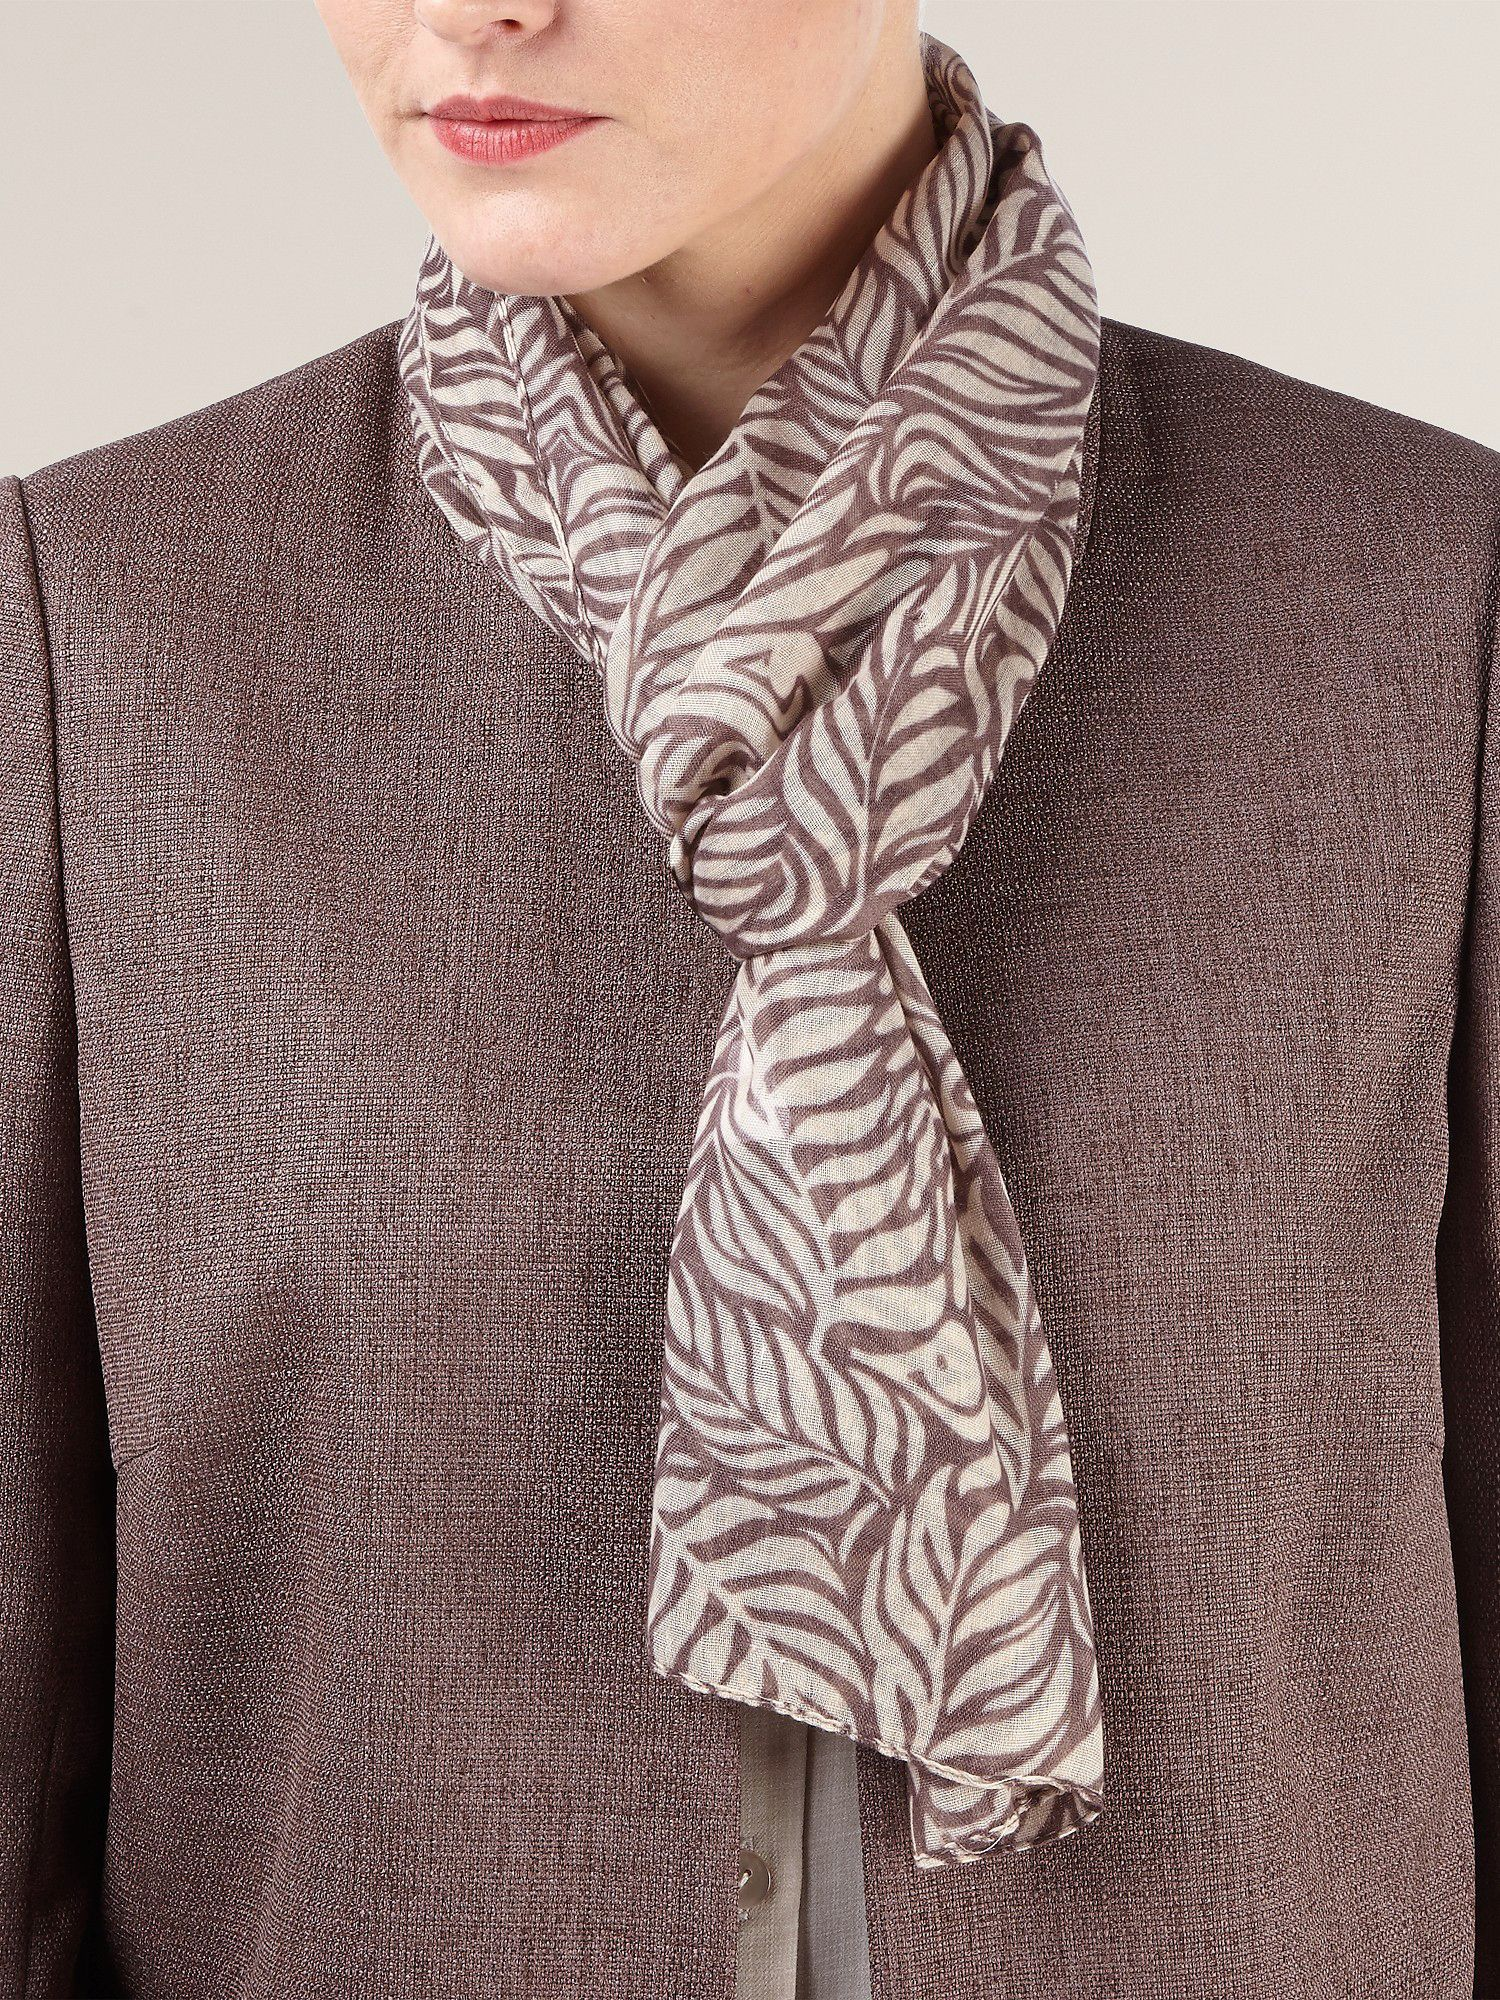 Ornate leaves printed scarf